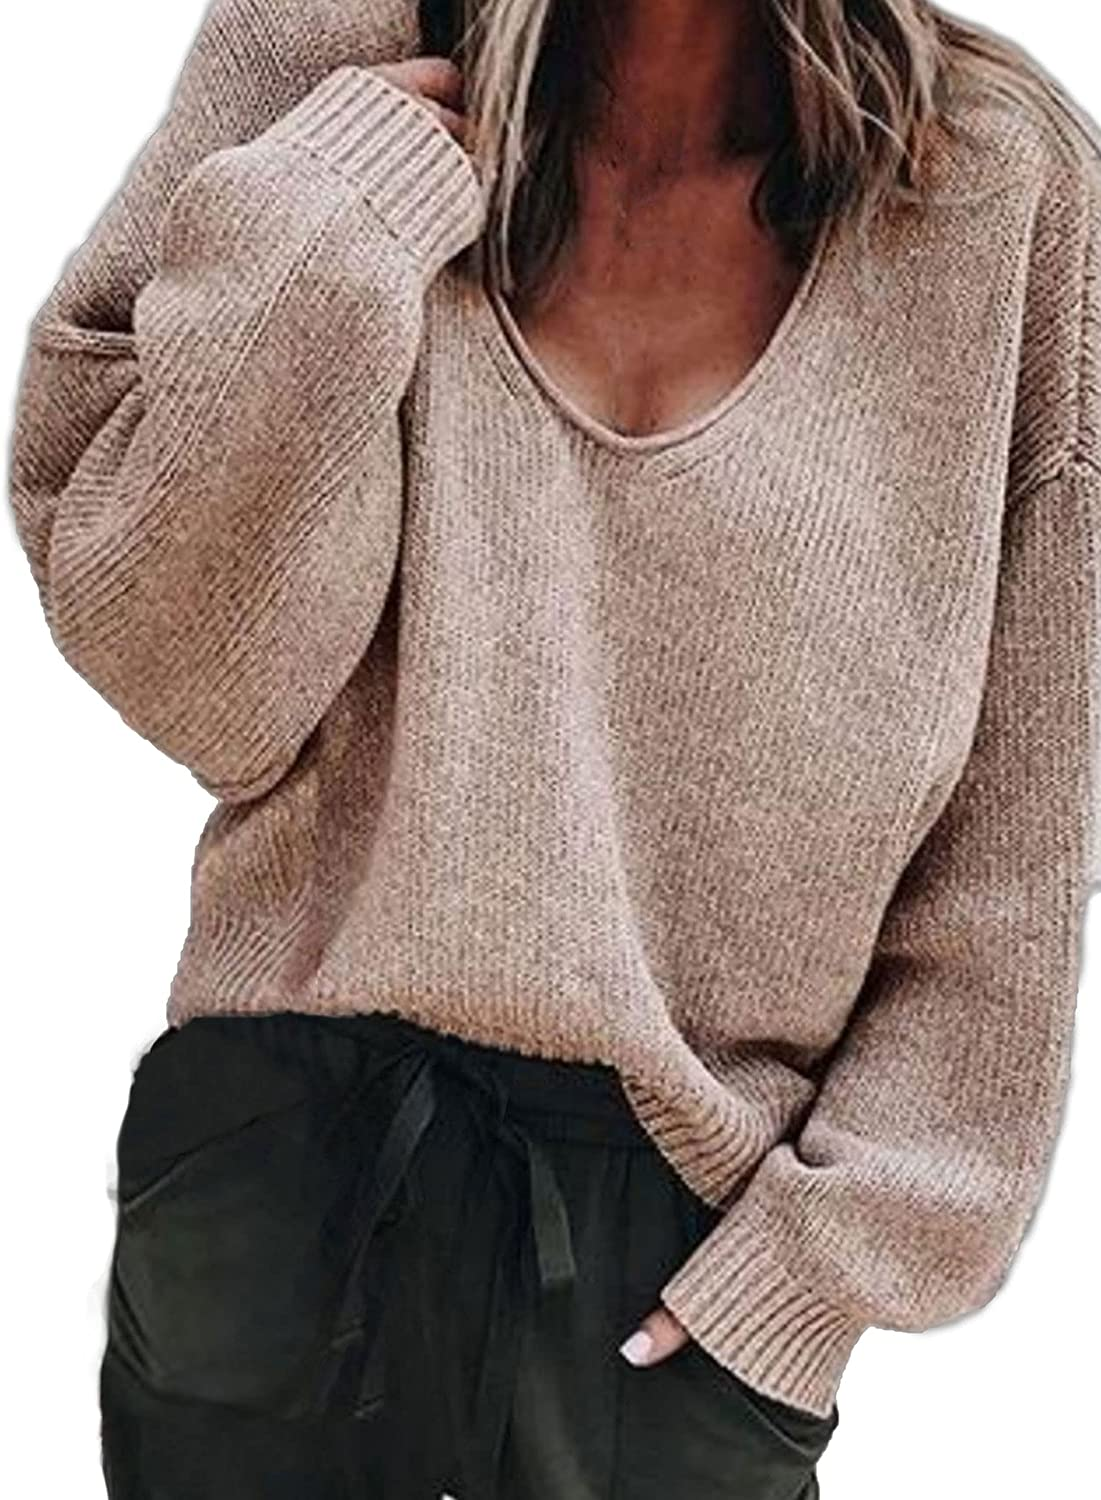 Aoulaydo Women's V Neck Pullover Sweater Comfy Long Sleeve Lightweight Casual Knit Tops